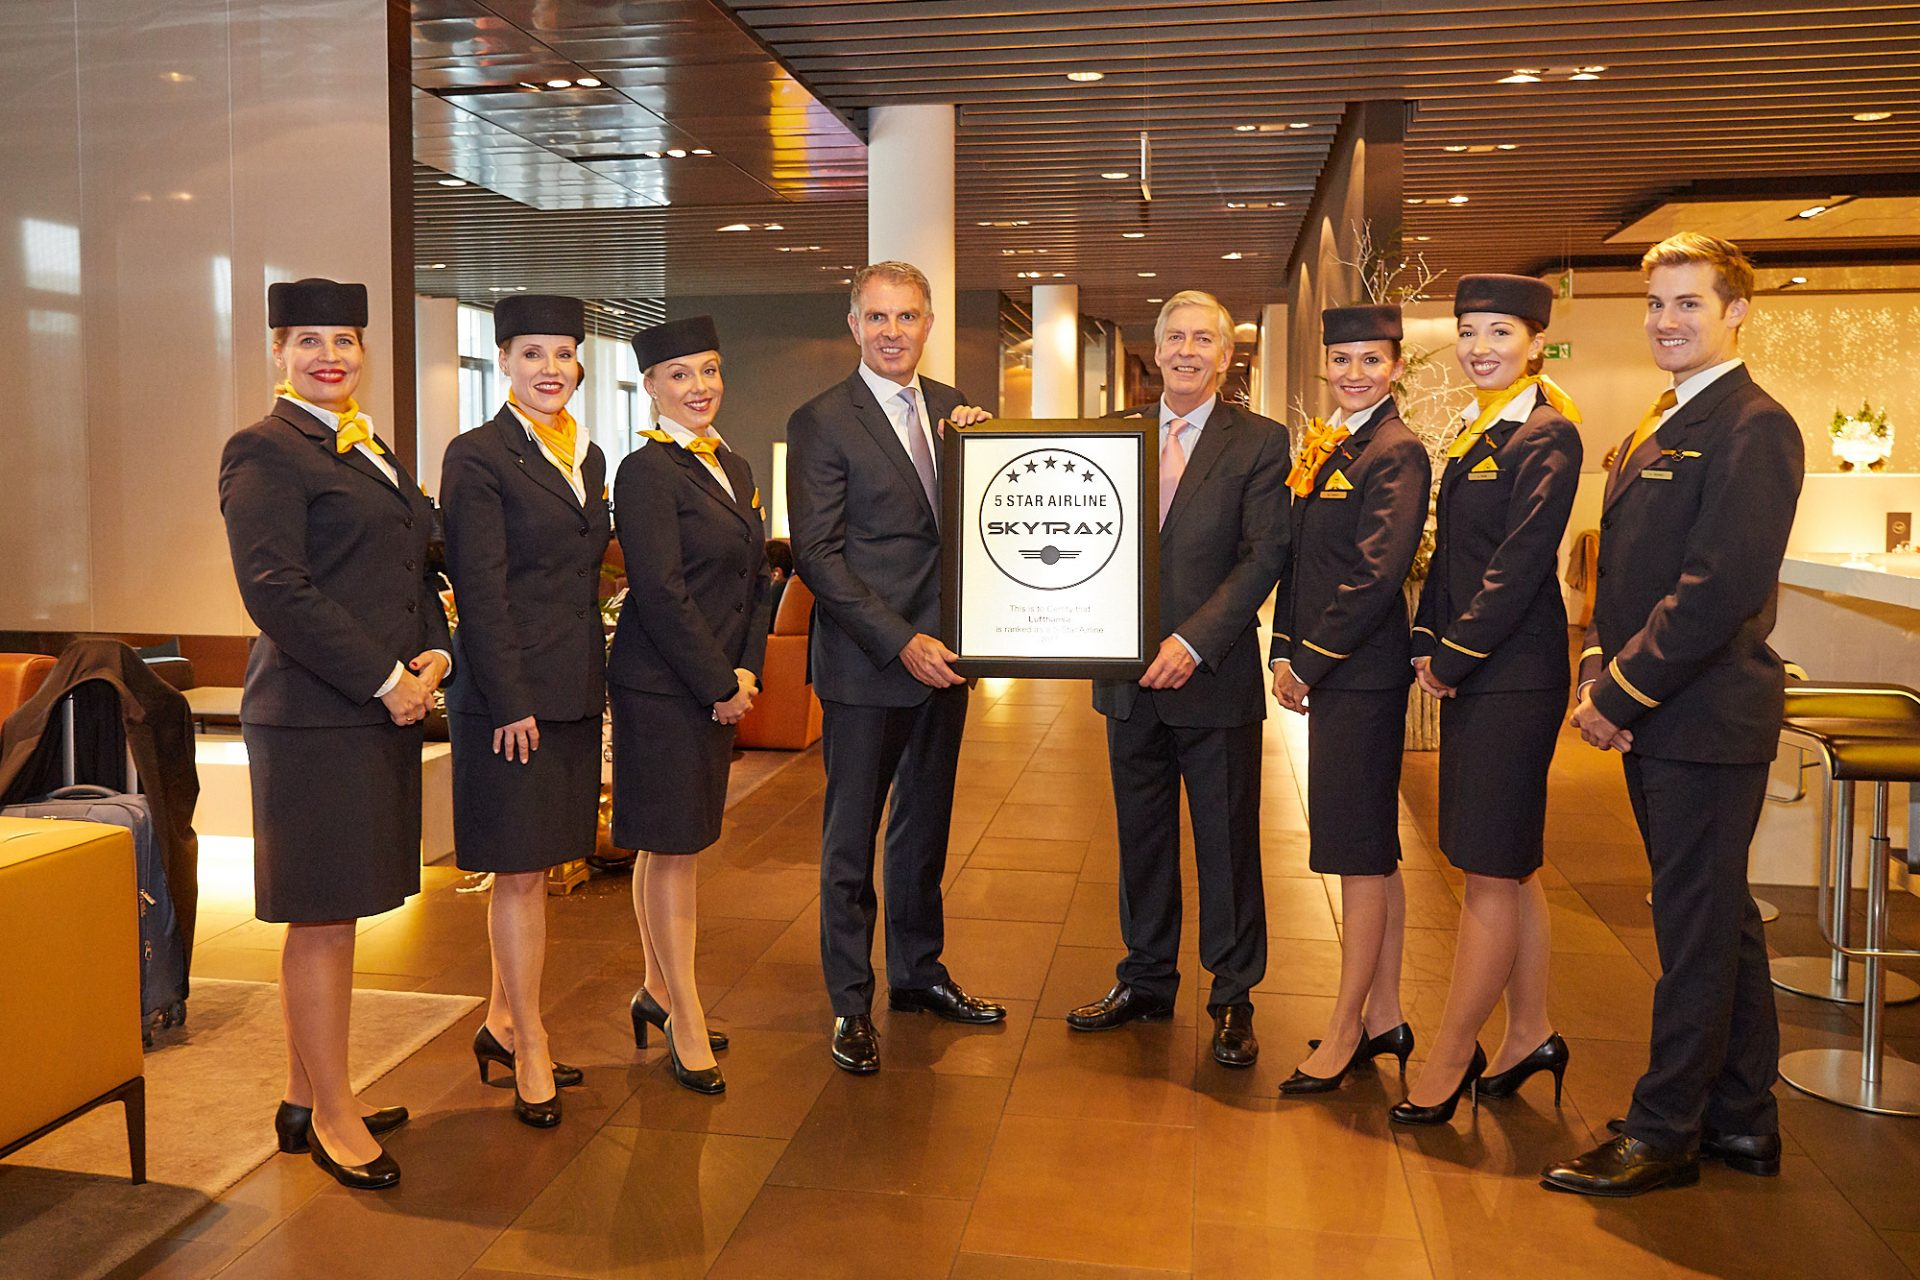 Lufthansa 5-star airline